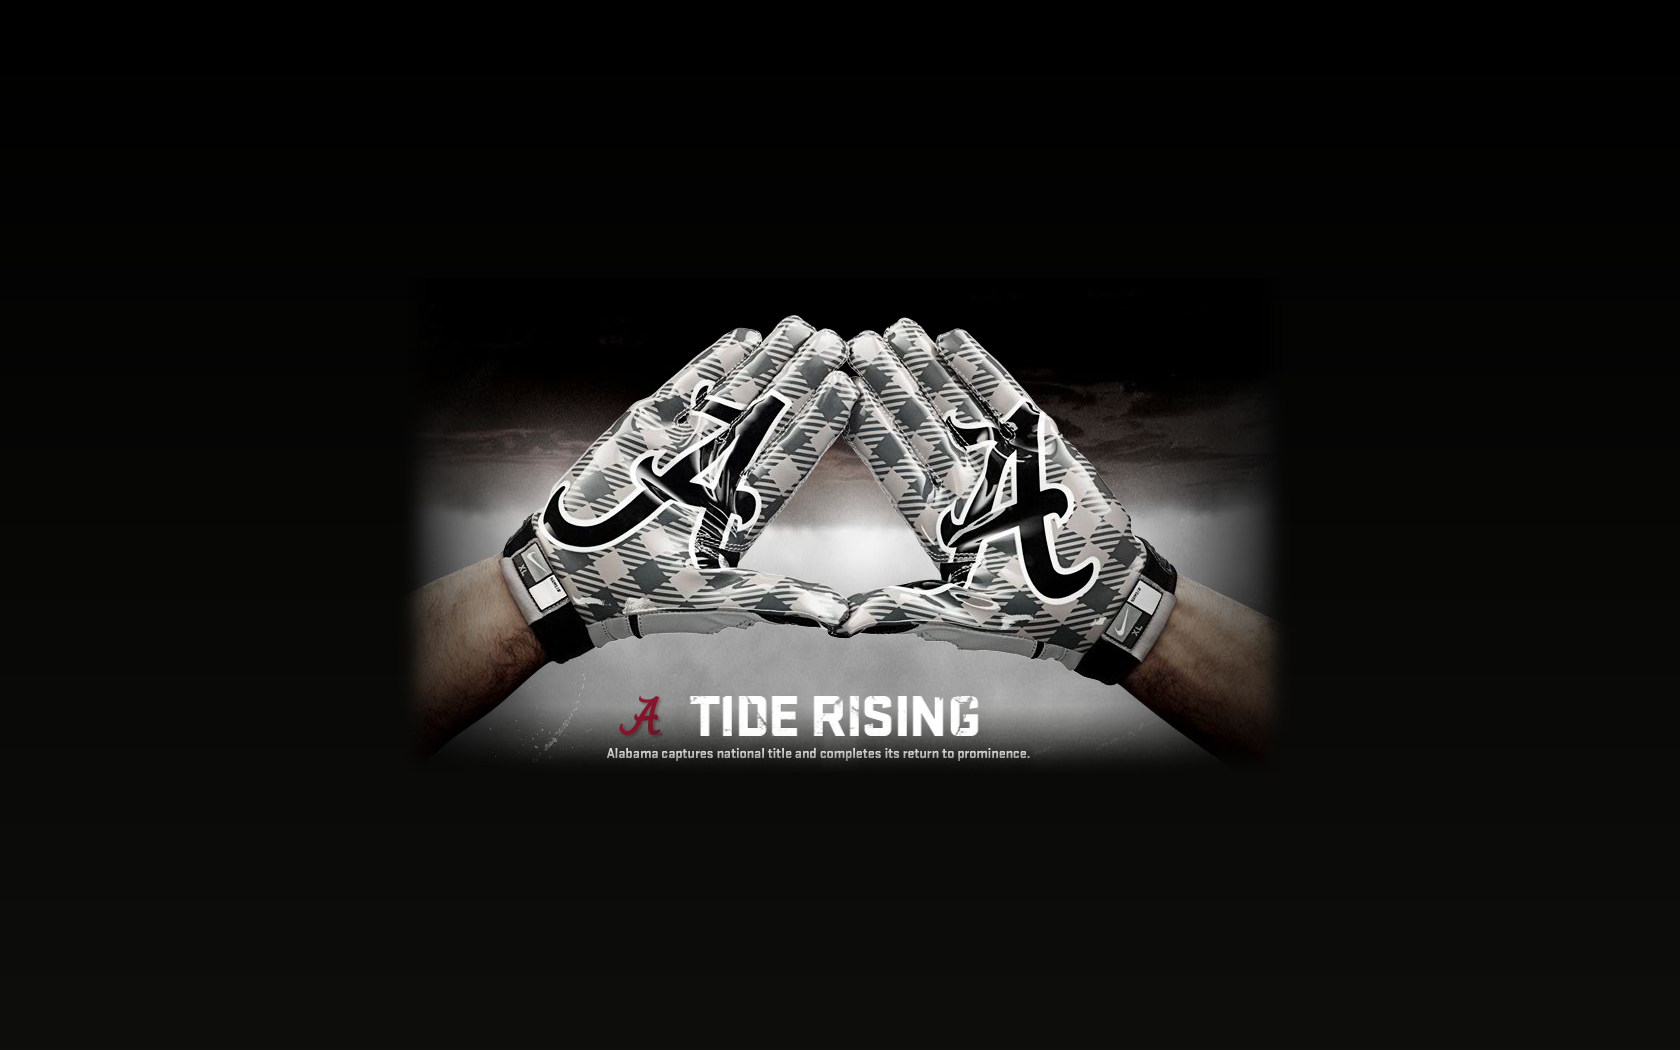 Alabama Football Desktop Wallpaper Crimson tide desktop wallpapers 1680x1050